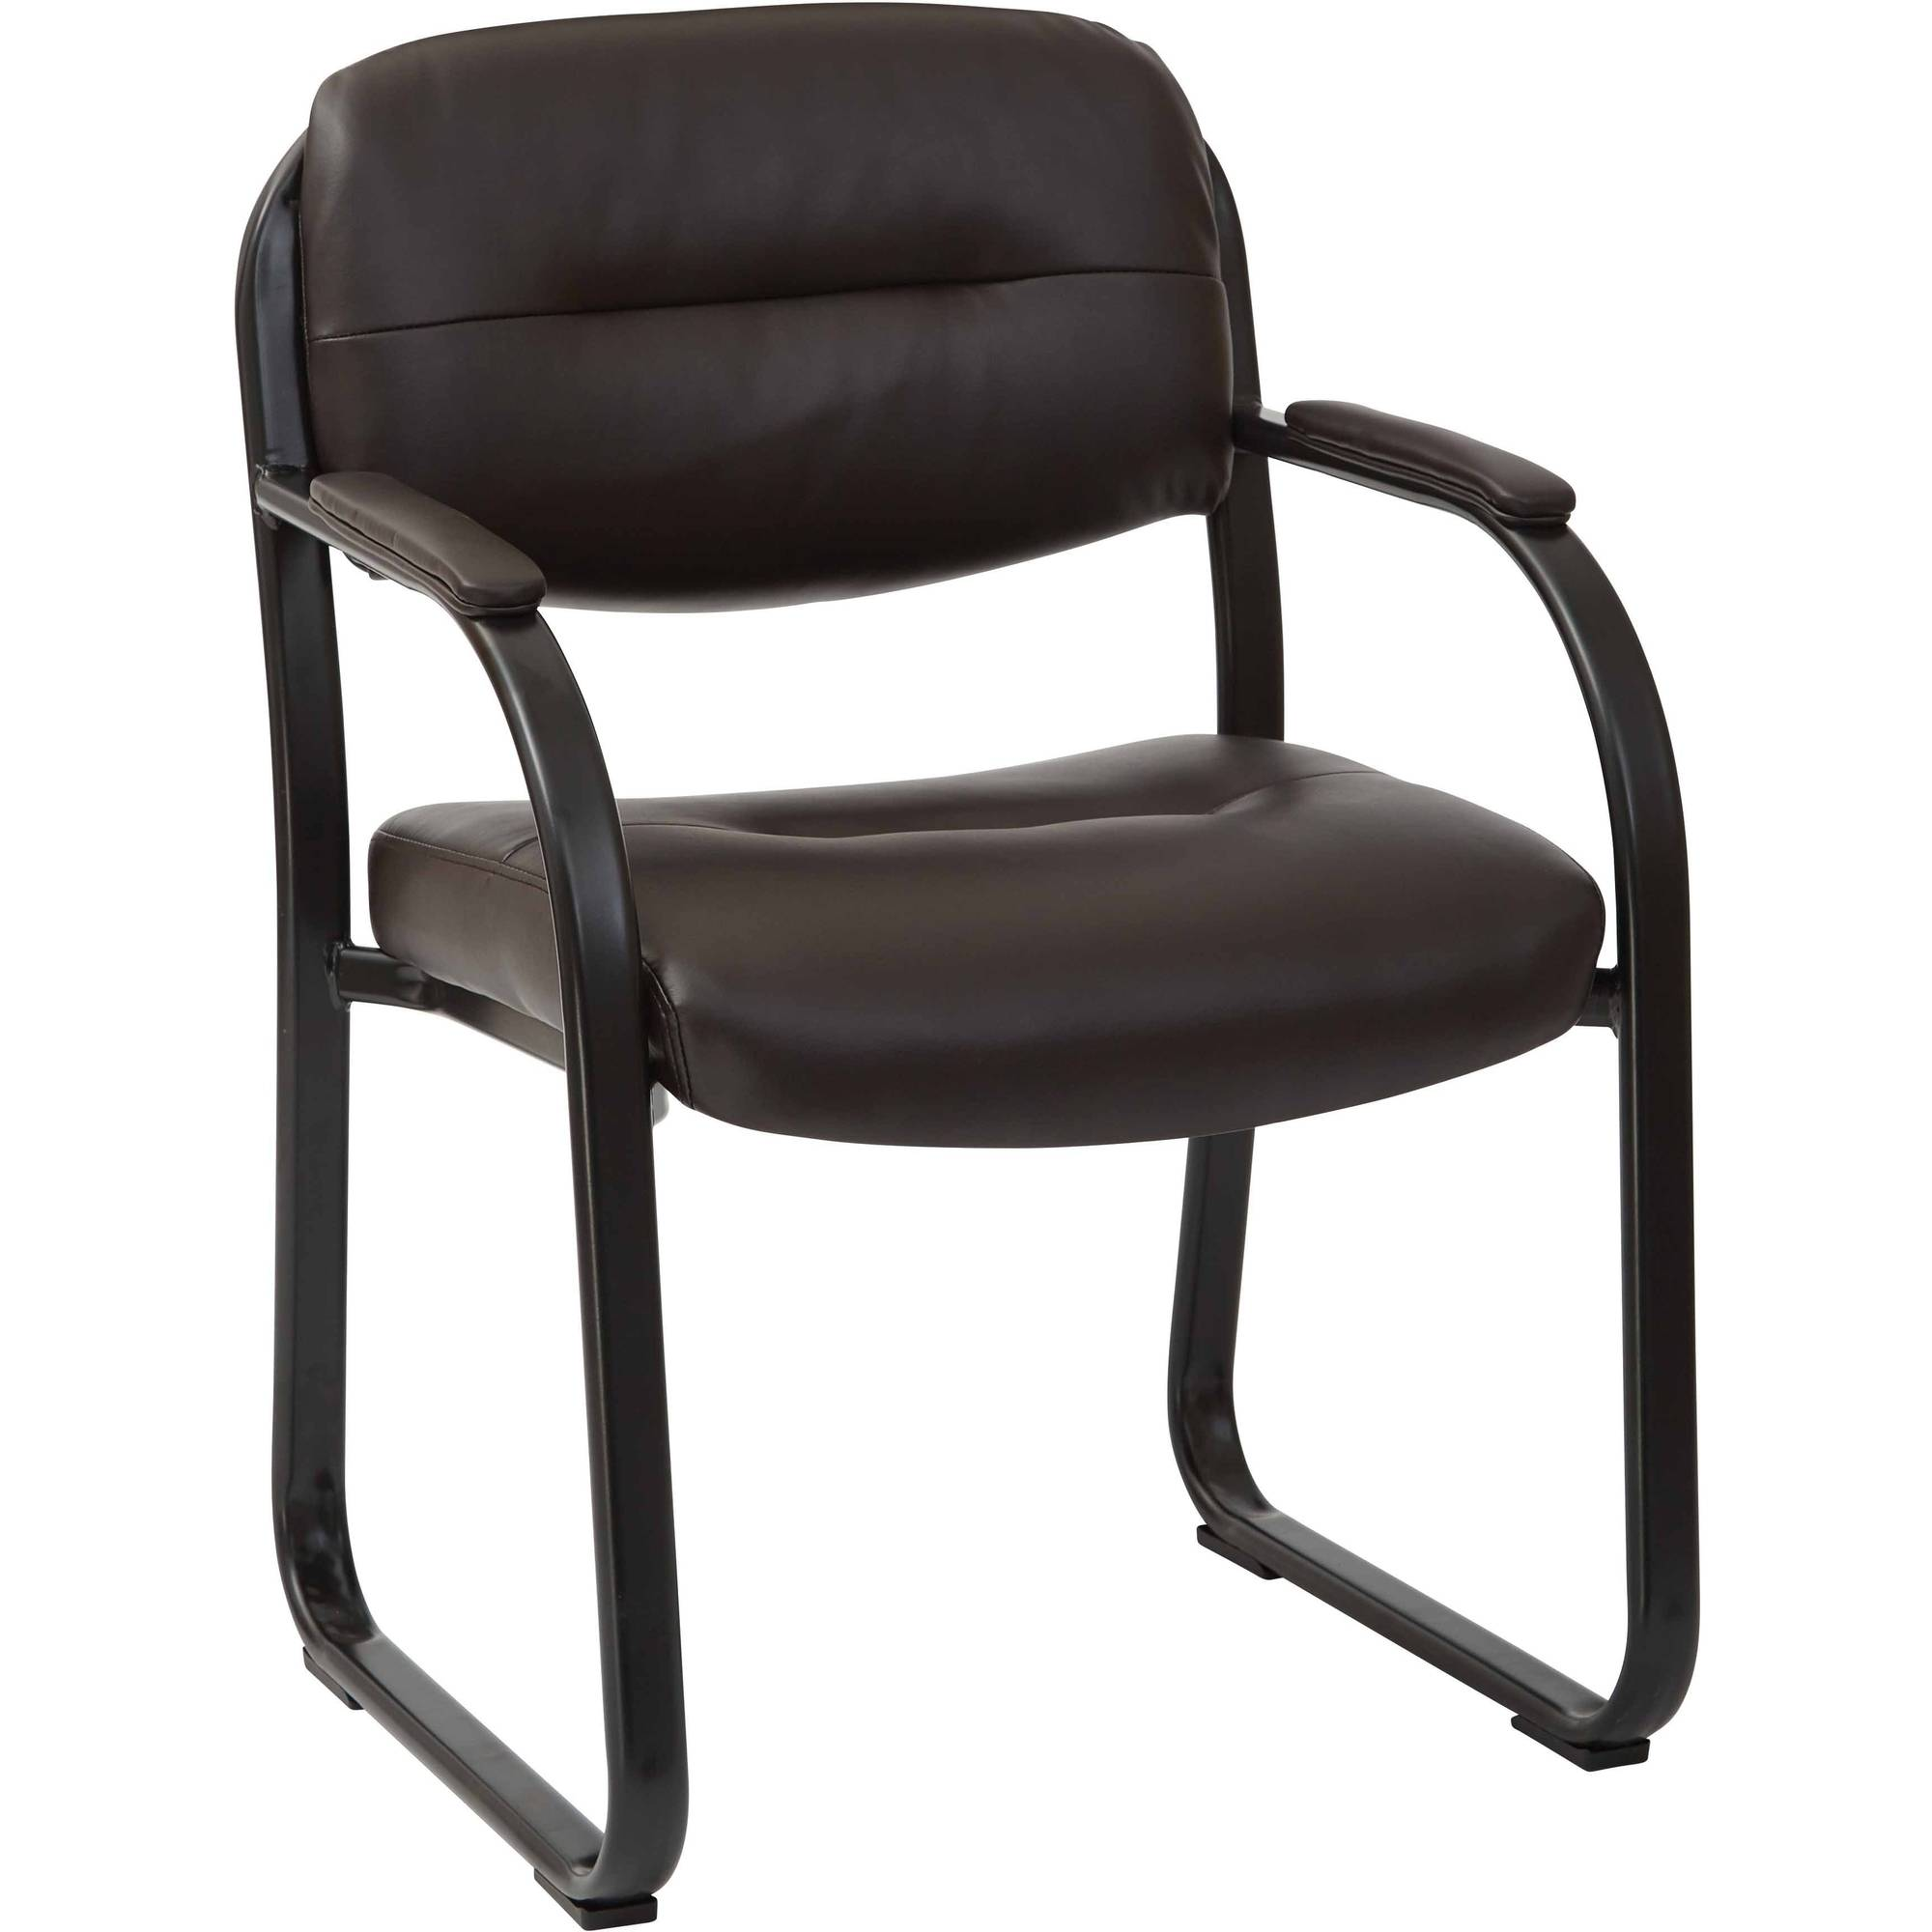 Deluxe Espresso Faux Leather Visitors Chair with Sled Base, Padded Arms and Heavy Duty Metal Sled Base